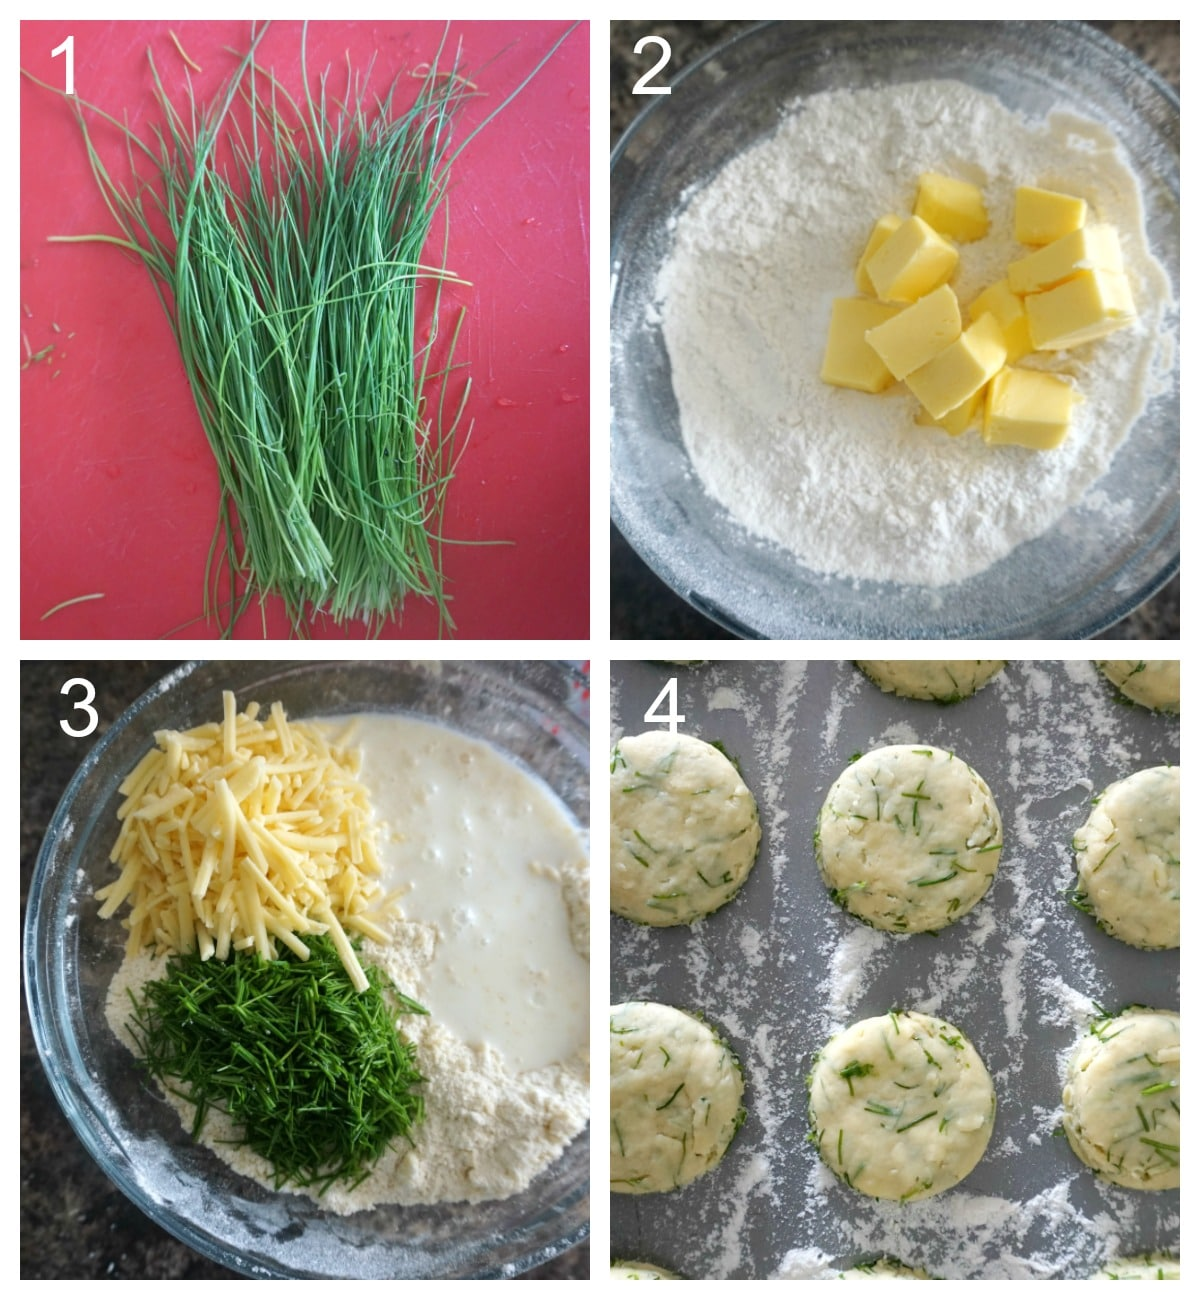 Collage of 4 photos to show how to make cheese and chive scones